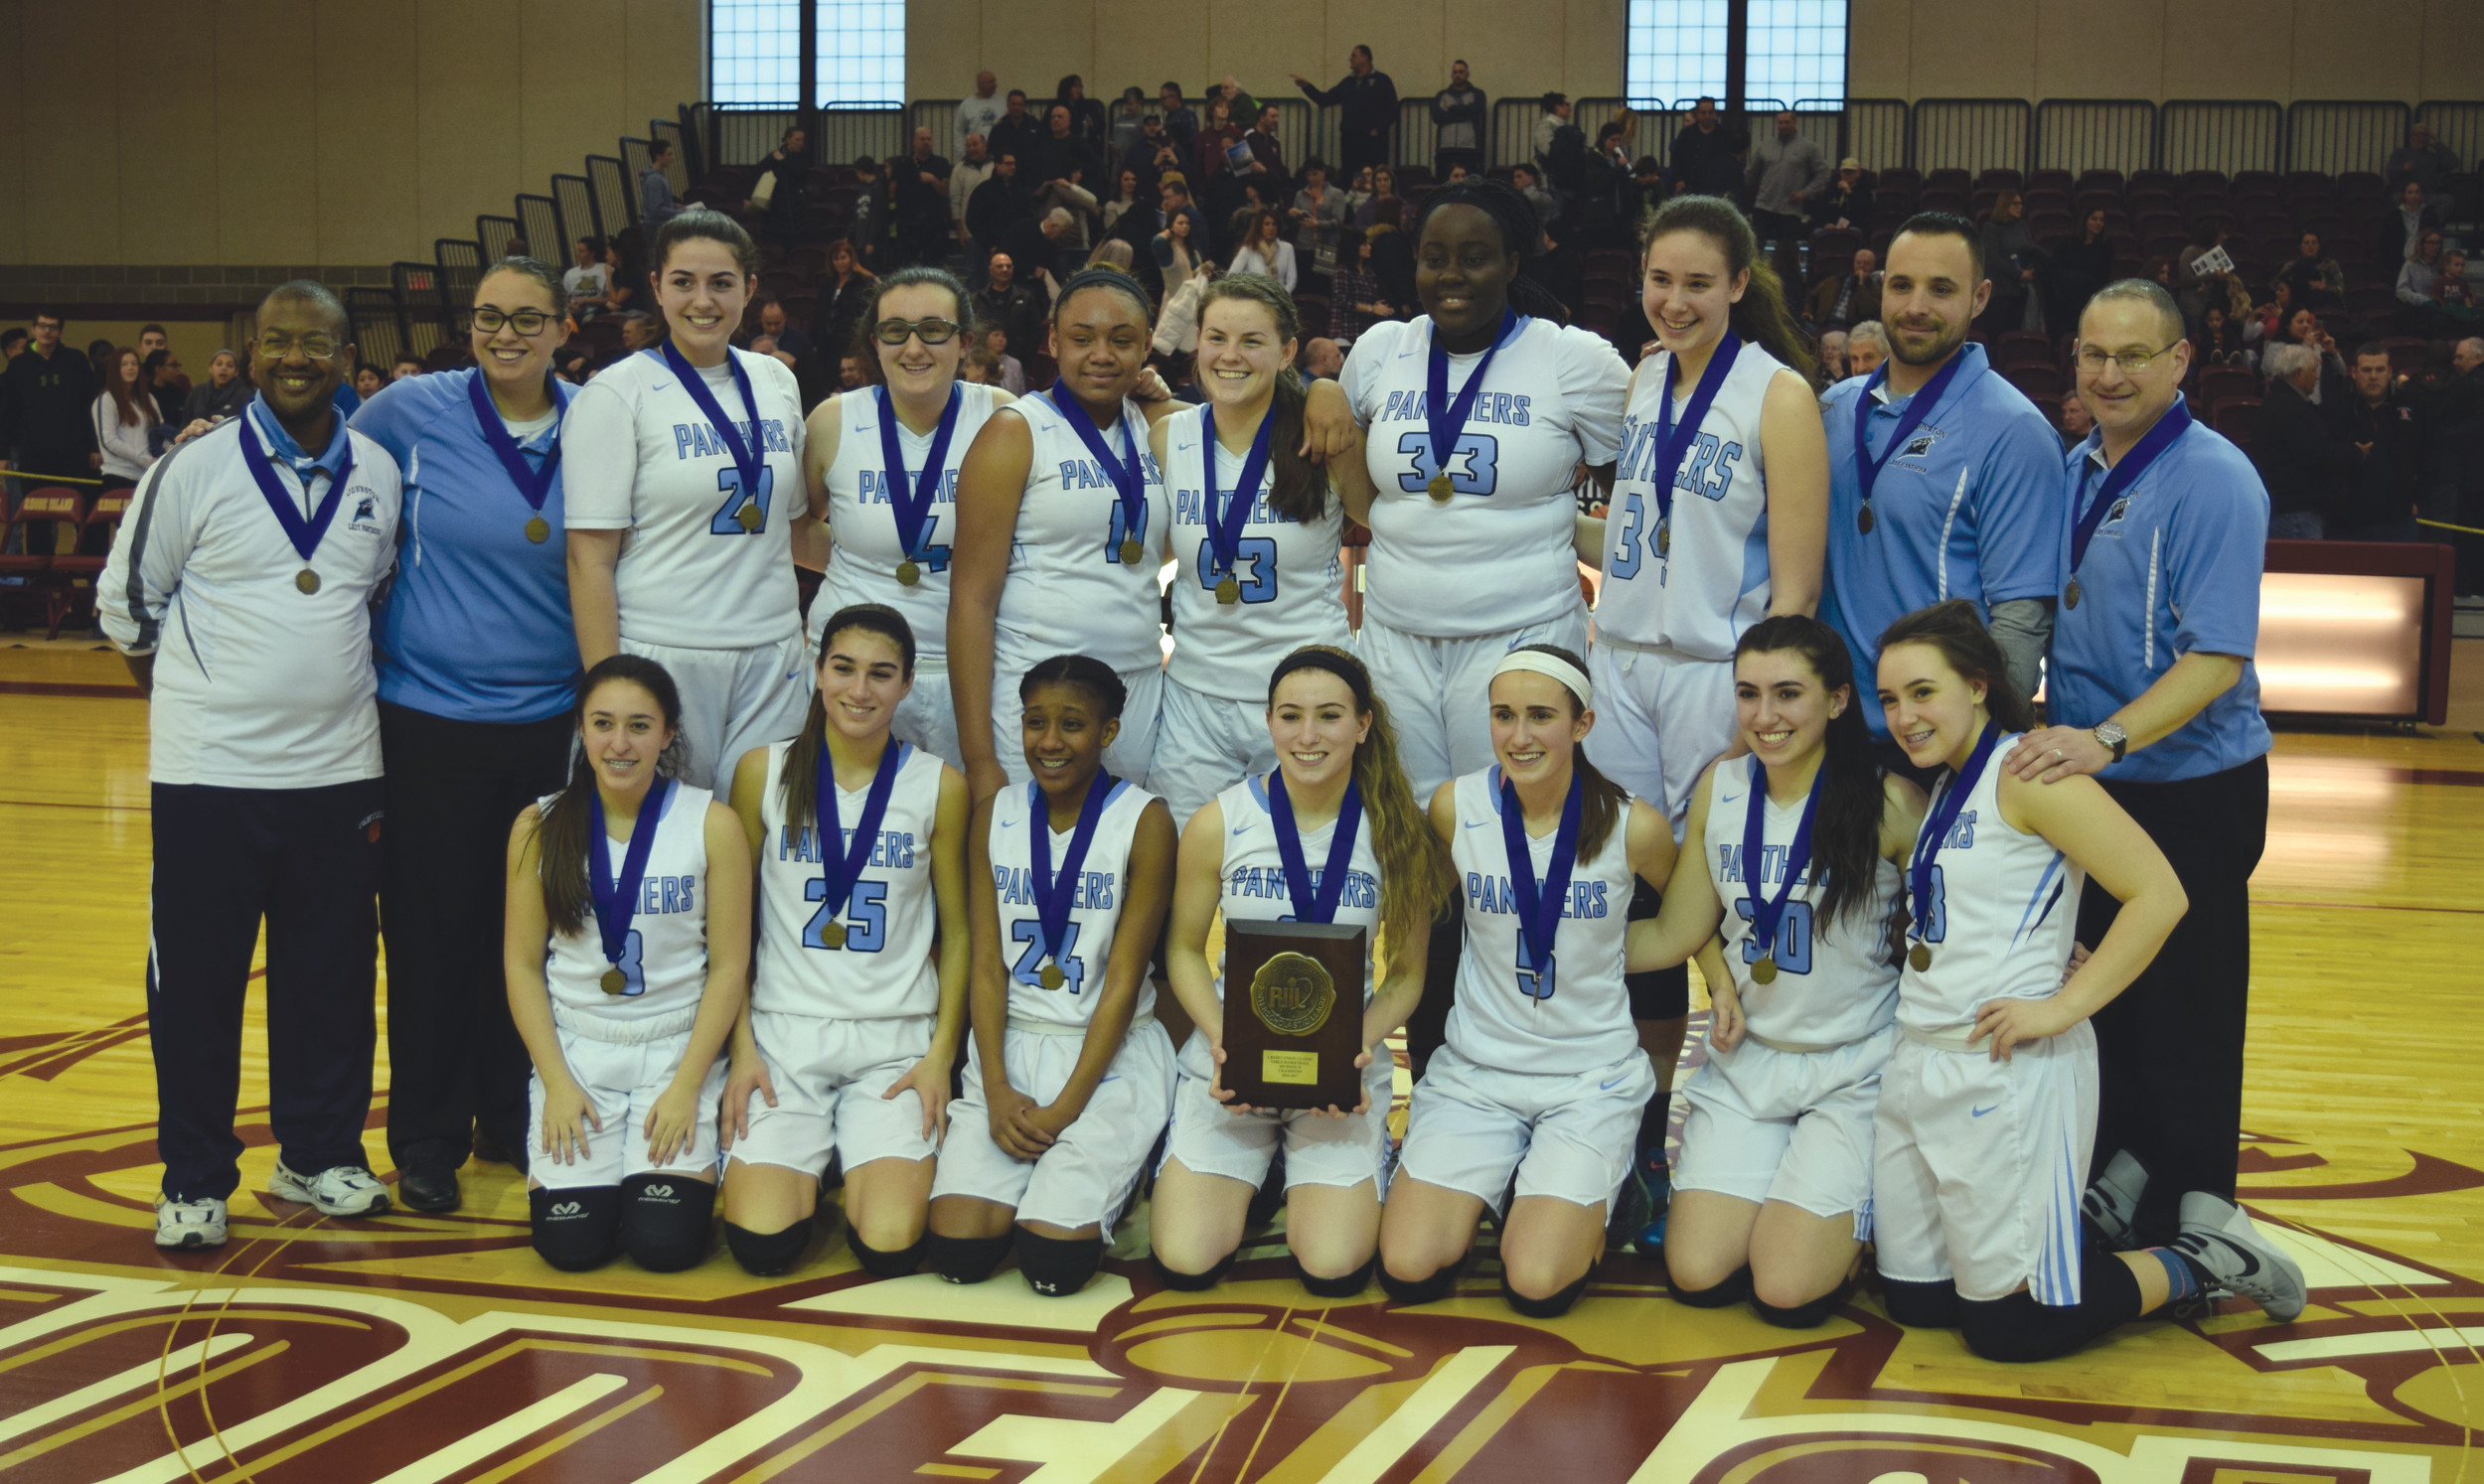 WIRE-TO-WIRE: The Johnston girls' basketball team captured its first championship since 2002, defeating East Providence, 60-46, on Saturday at Rhode Island College for the Division II crown. The Panthers finished their undefeated season with a contest they led from beginning to end behind a game-high 15 points from junior Jordan Moretti. Their efforts earned them the No. 3 overall seed in the state tournament that opened Wednesday